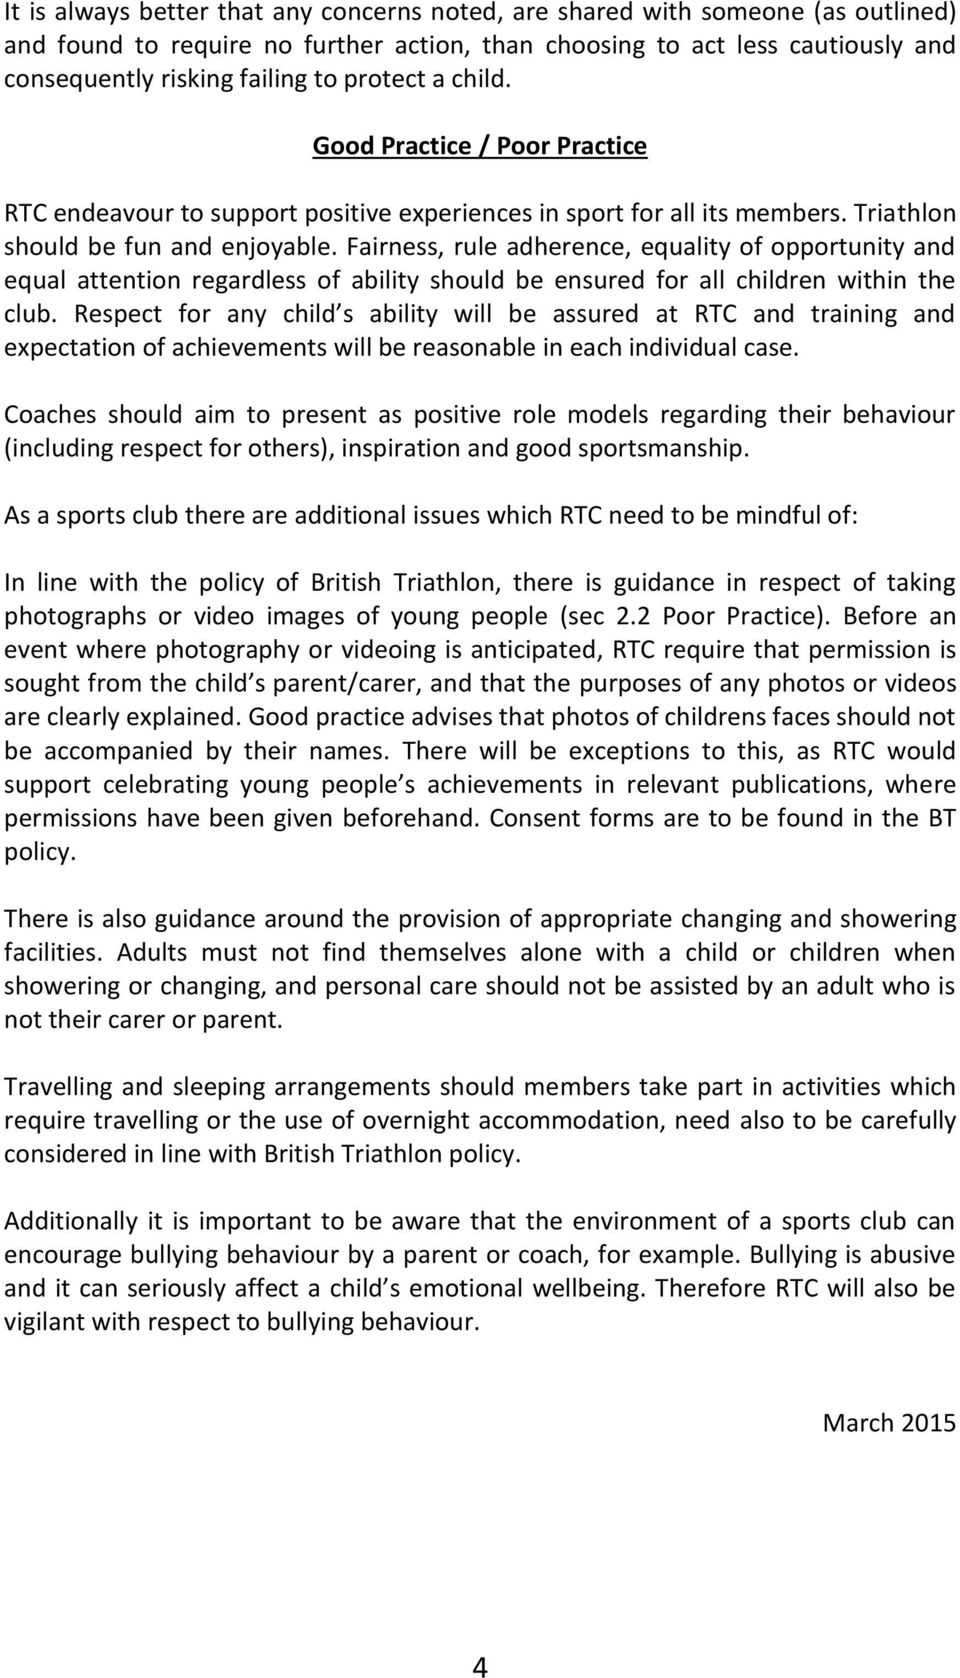 Fairness, rule adherence, equality of opportunity and equal attention regardless of ability should be ensured for all children within the club.